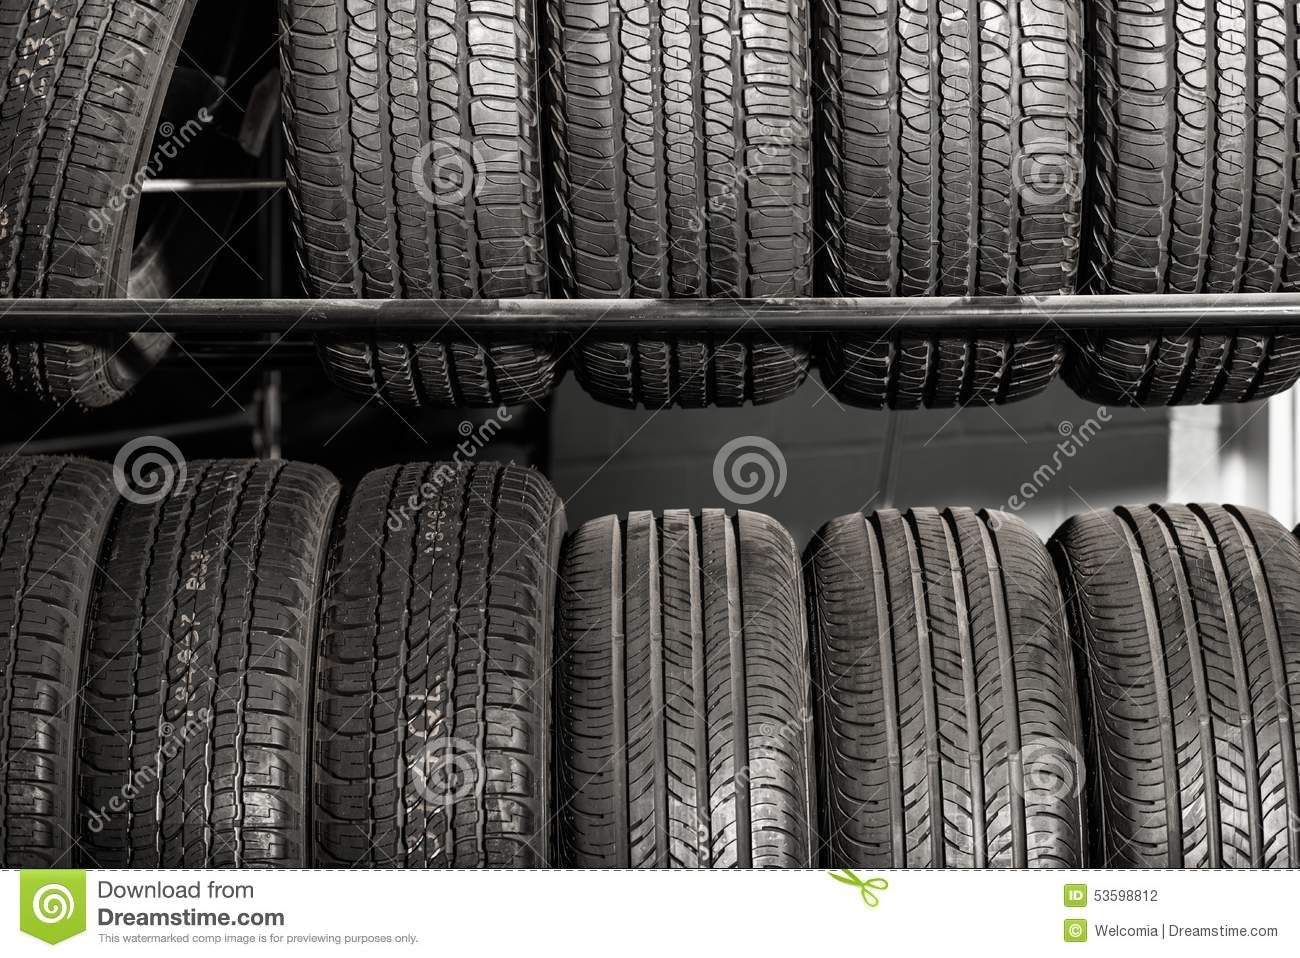 Car Tire Sales: Tires Rack Tire Sales Stock Photo. Image Of Retail, Wheel